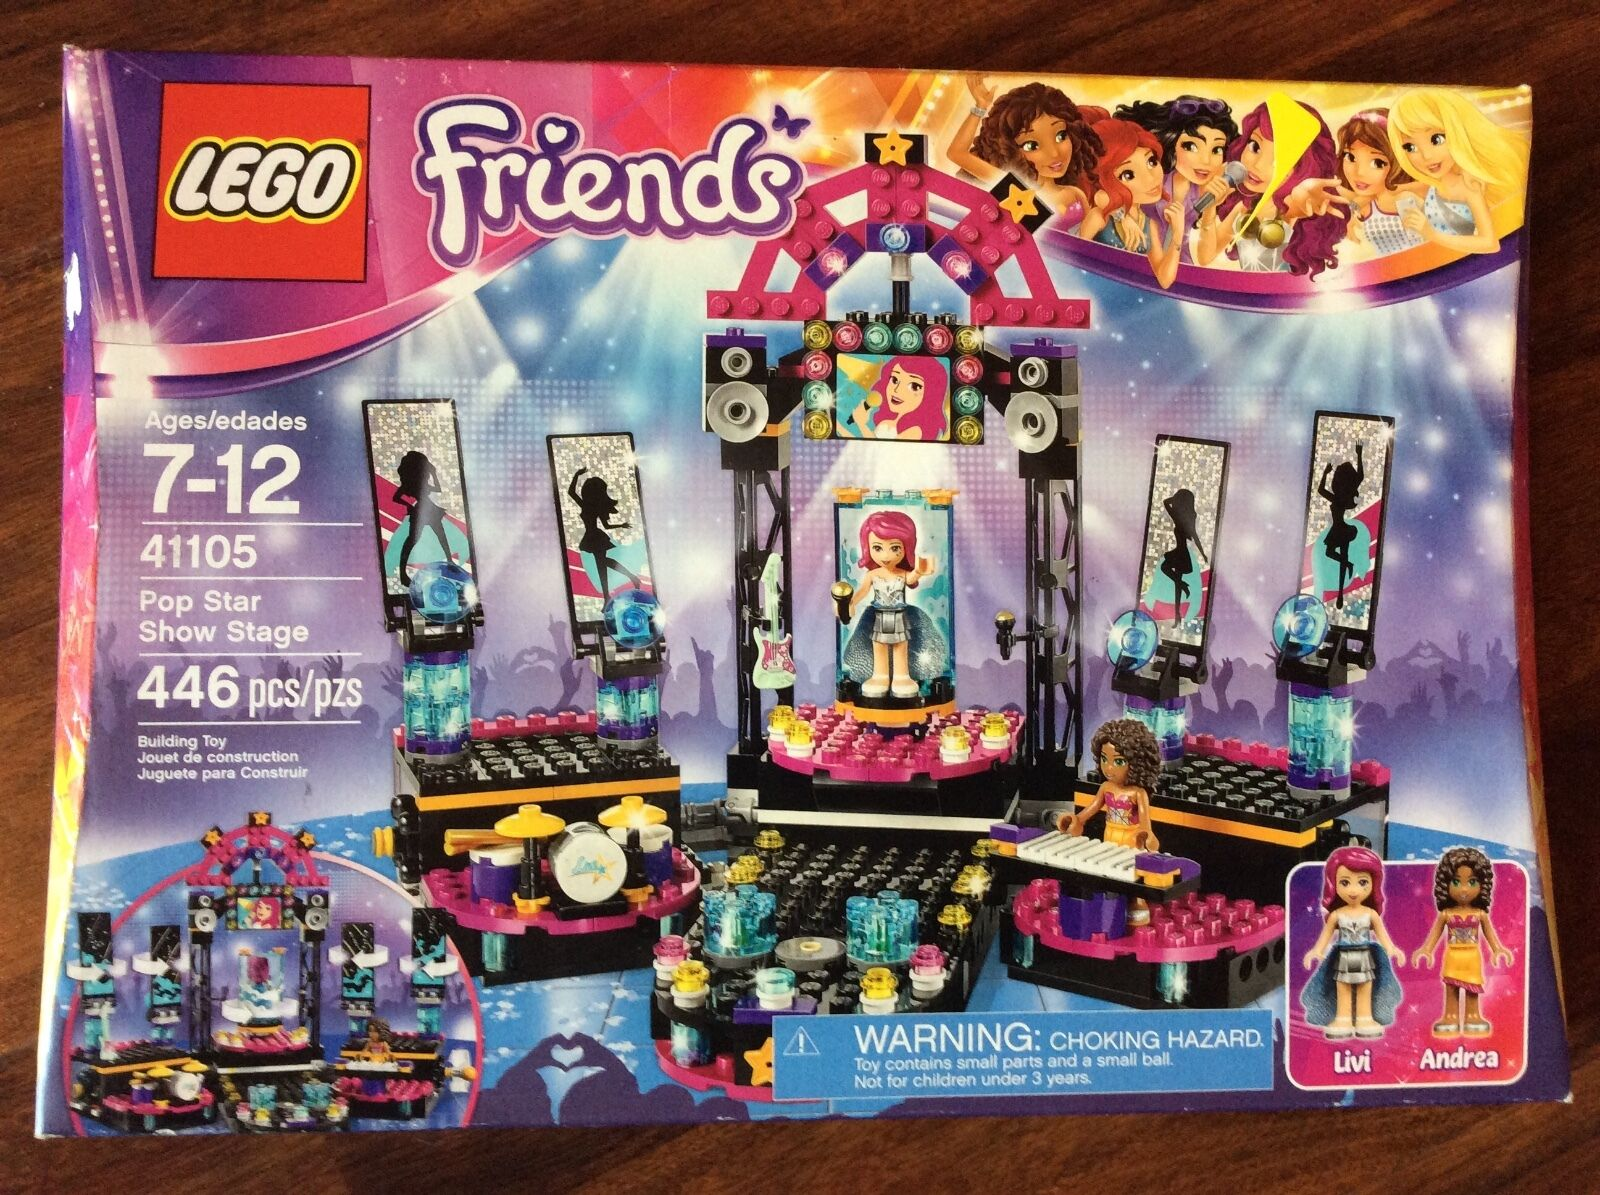 New Lego Friends Pop Star Show Stage Set 41105 in Damaged Box